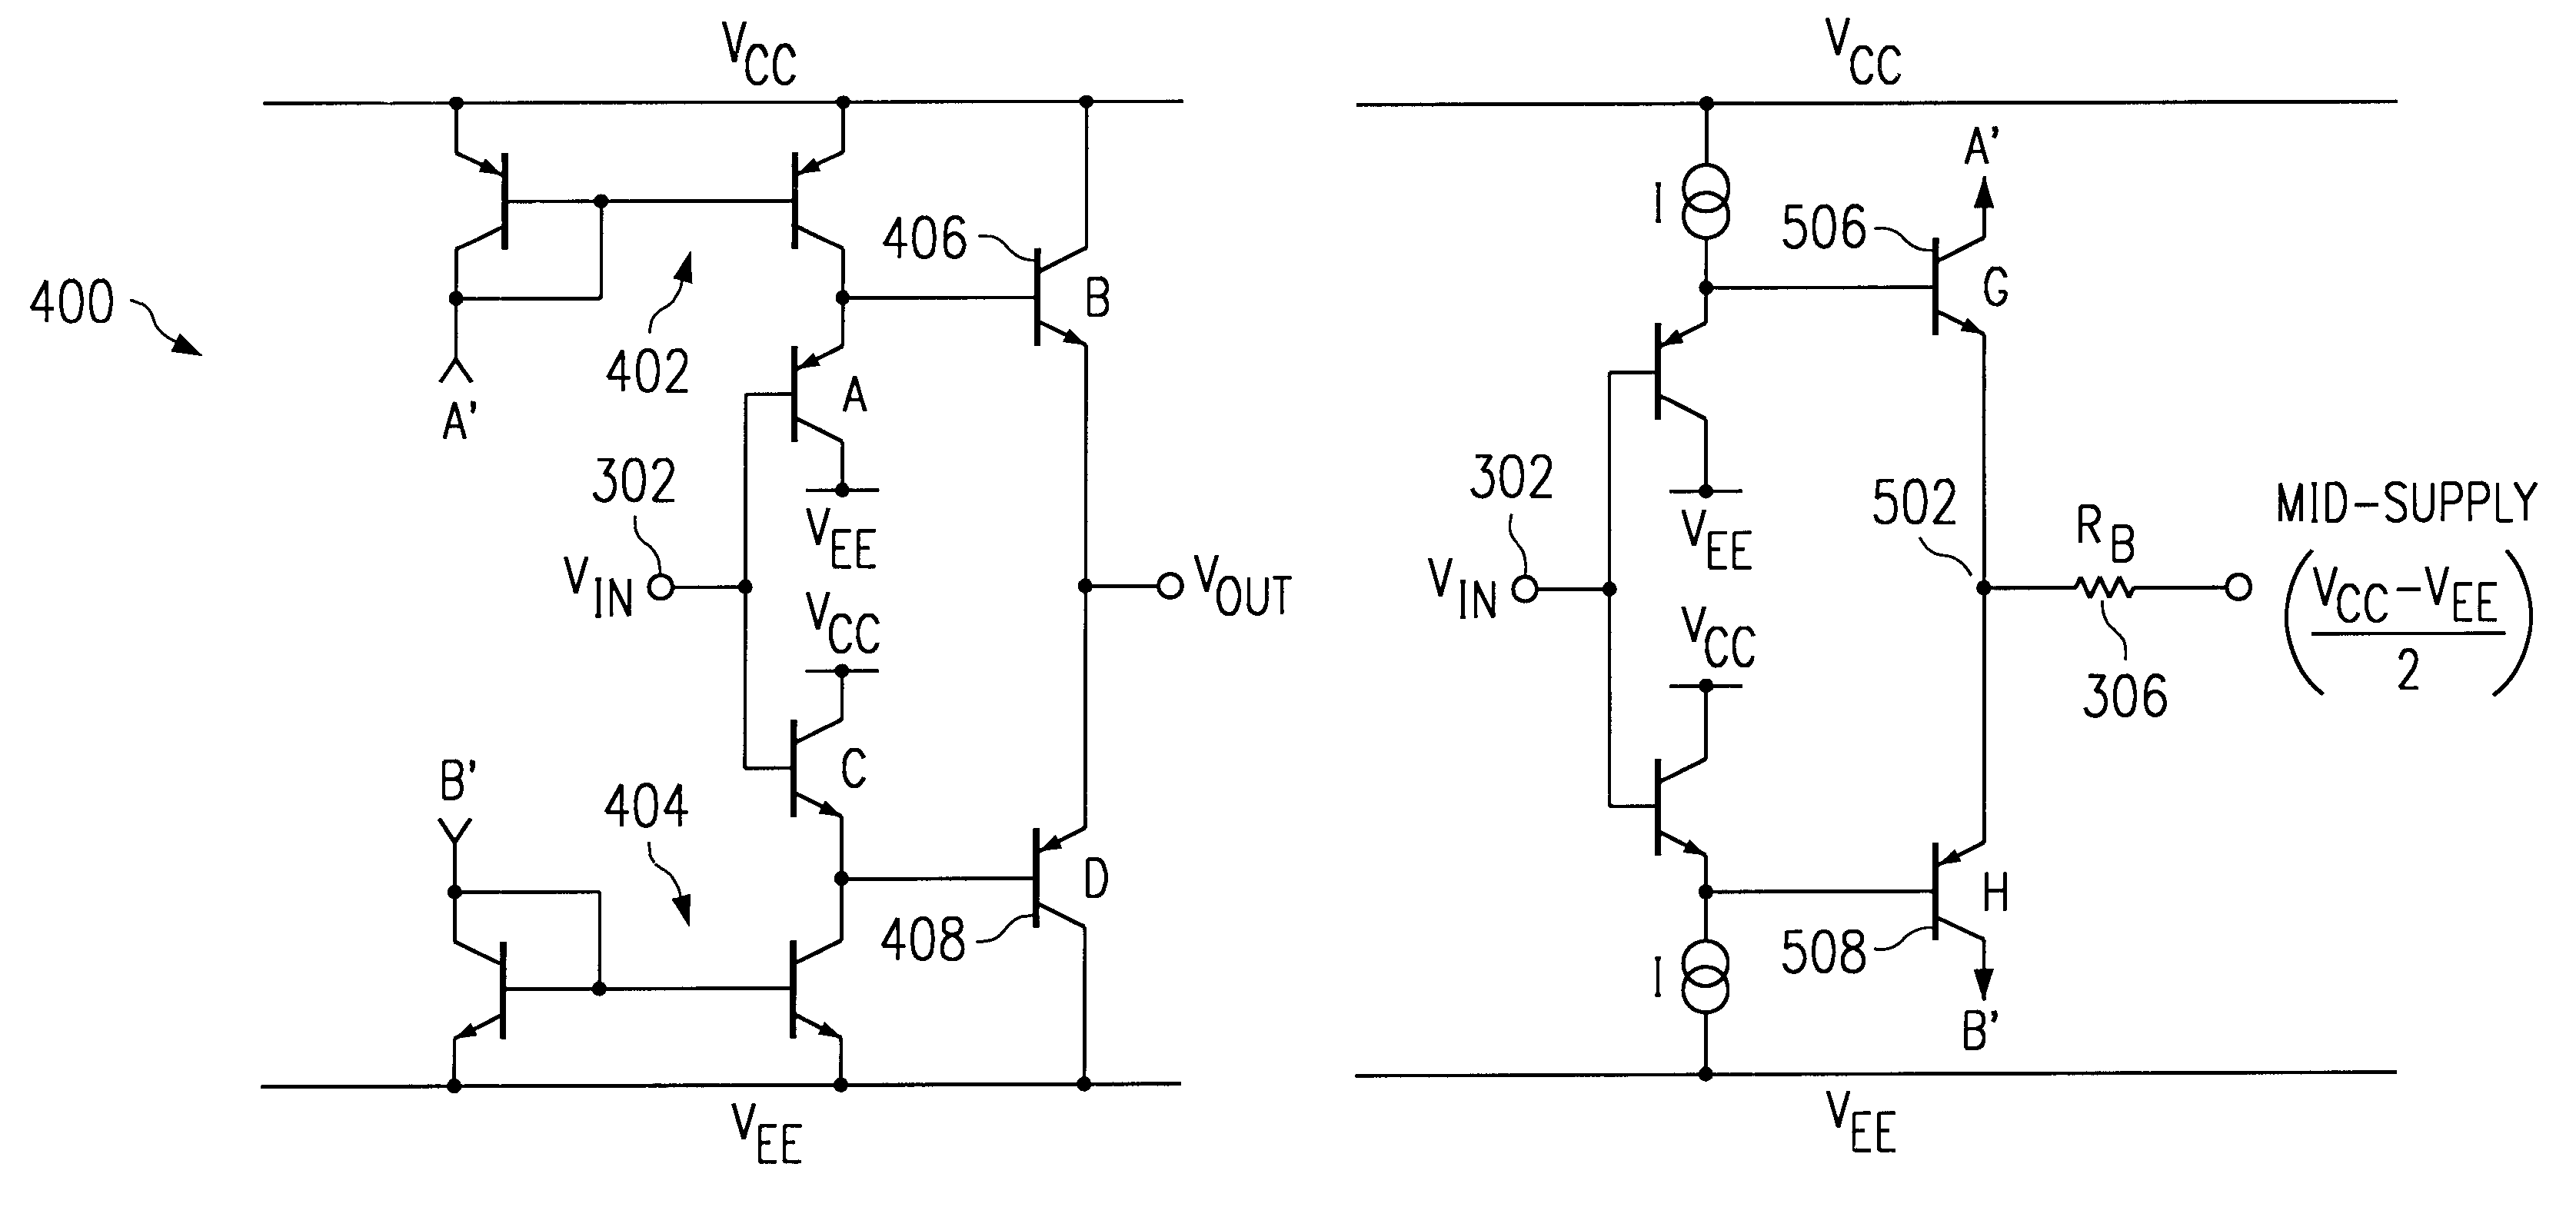 Mosfet Class Ab Amplifier Frequency Response Power Circuit Diagrams Diagram And Patent Us6501334 Actively Biased Output Stage